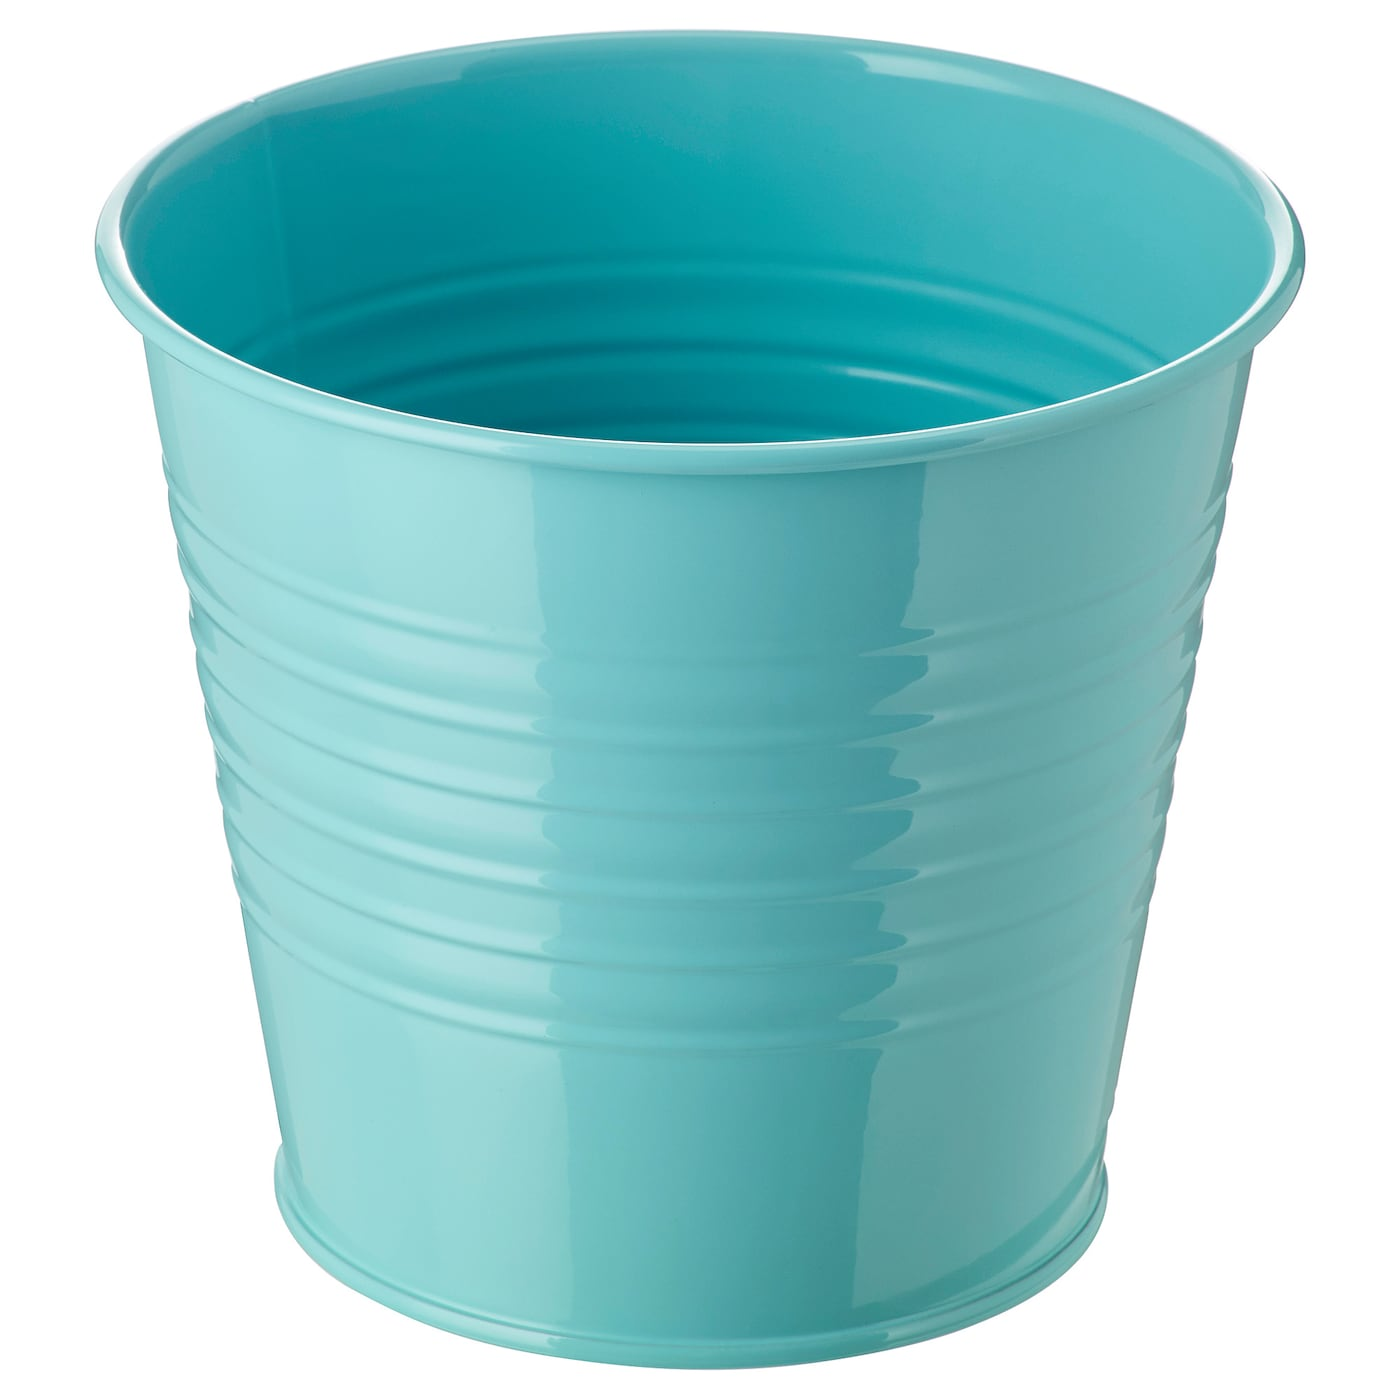 Socker cache pot int rieur ext rieur turquoise 12 cm ikea for Cache pot exterieur